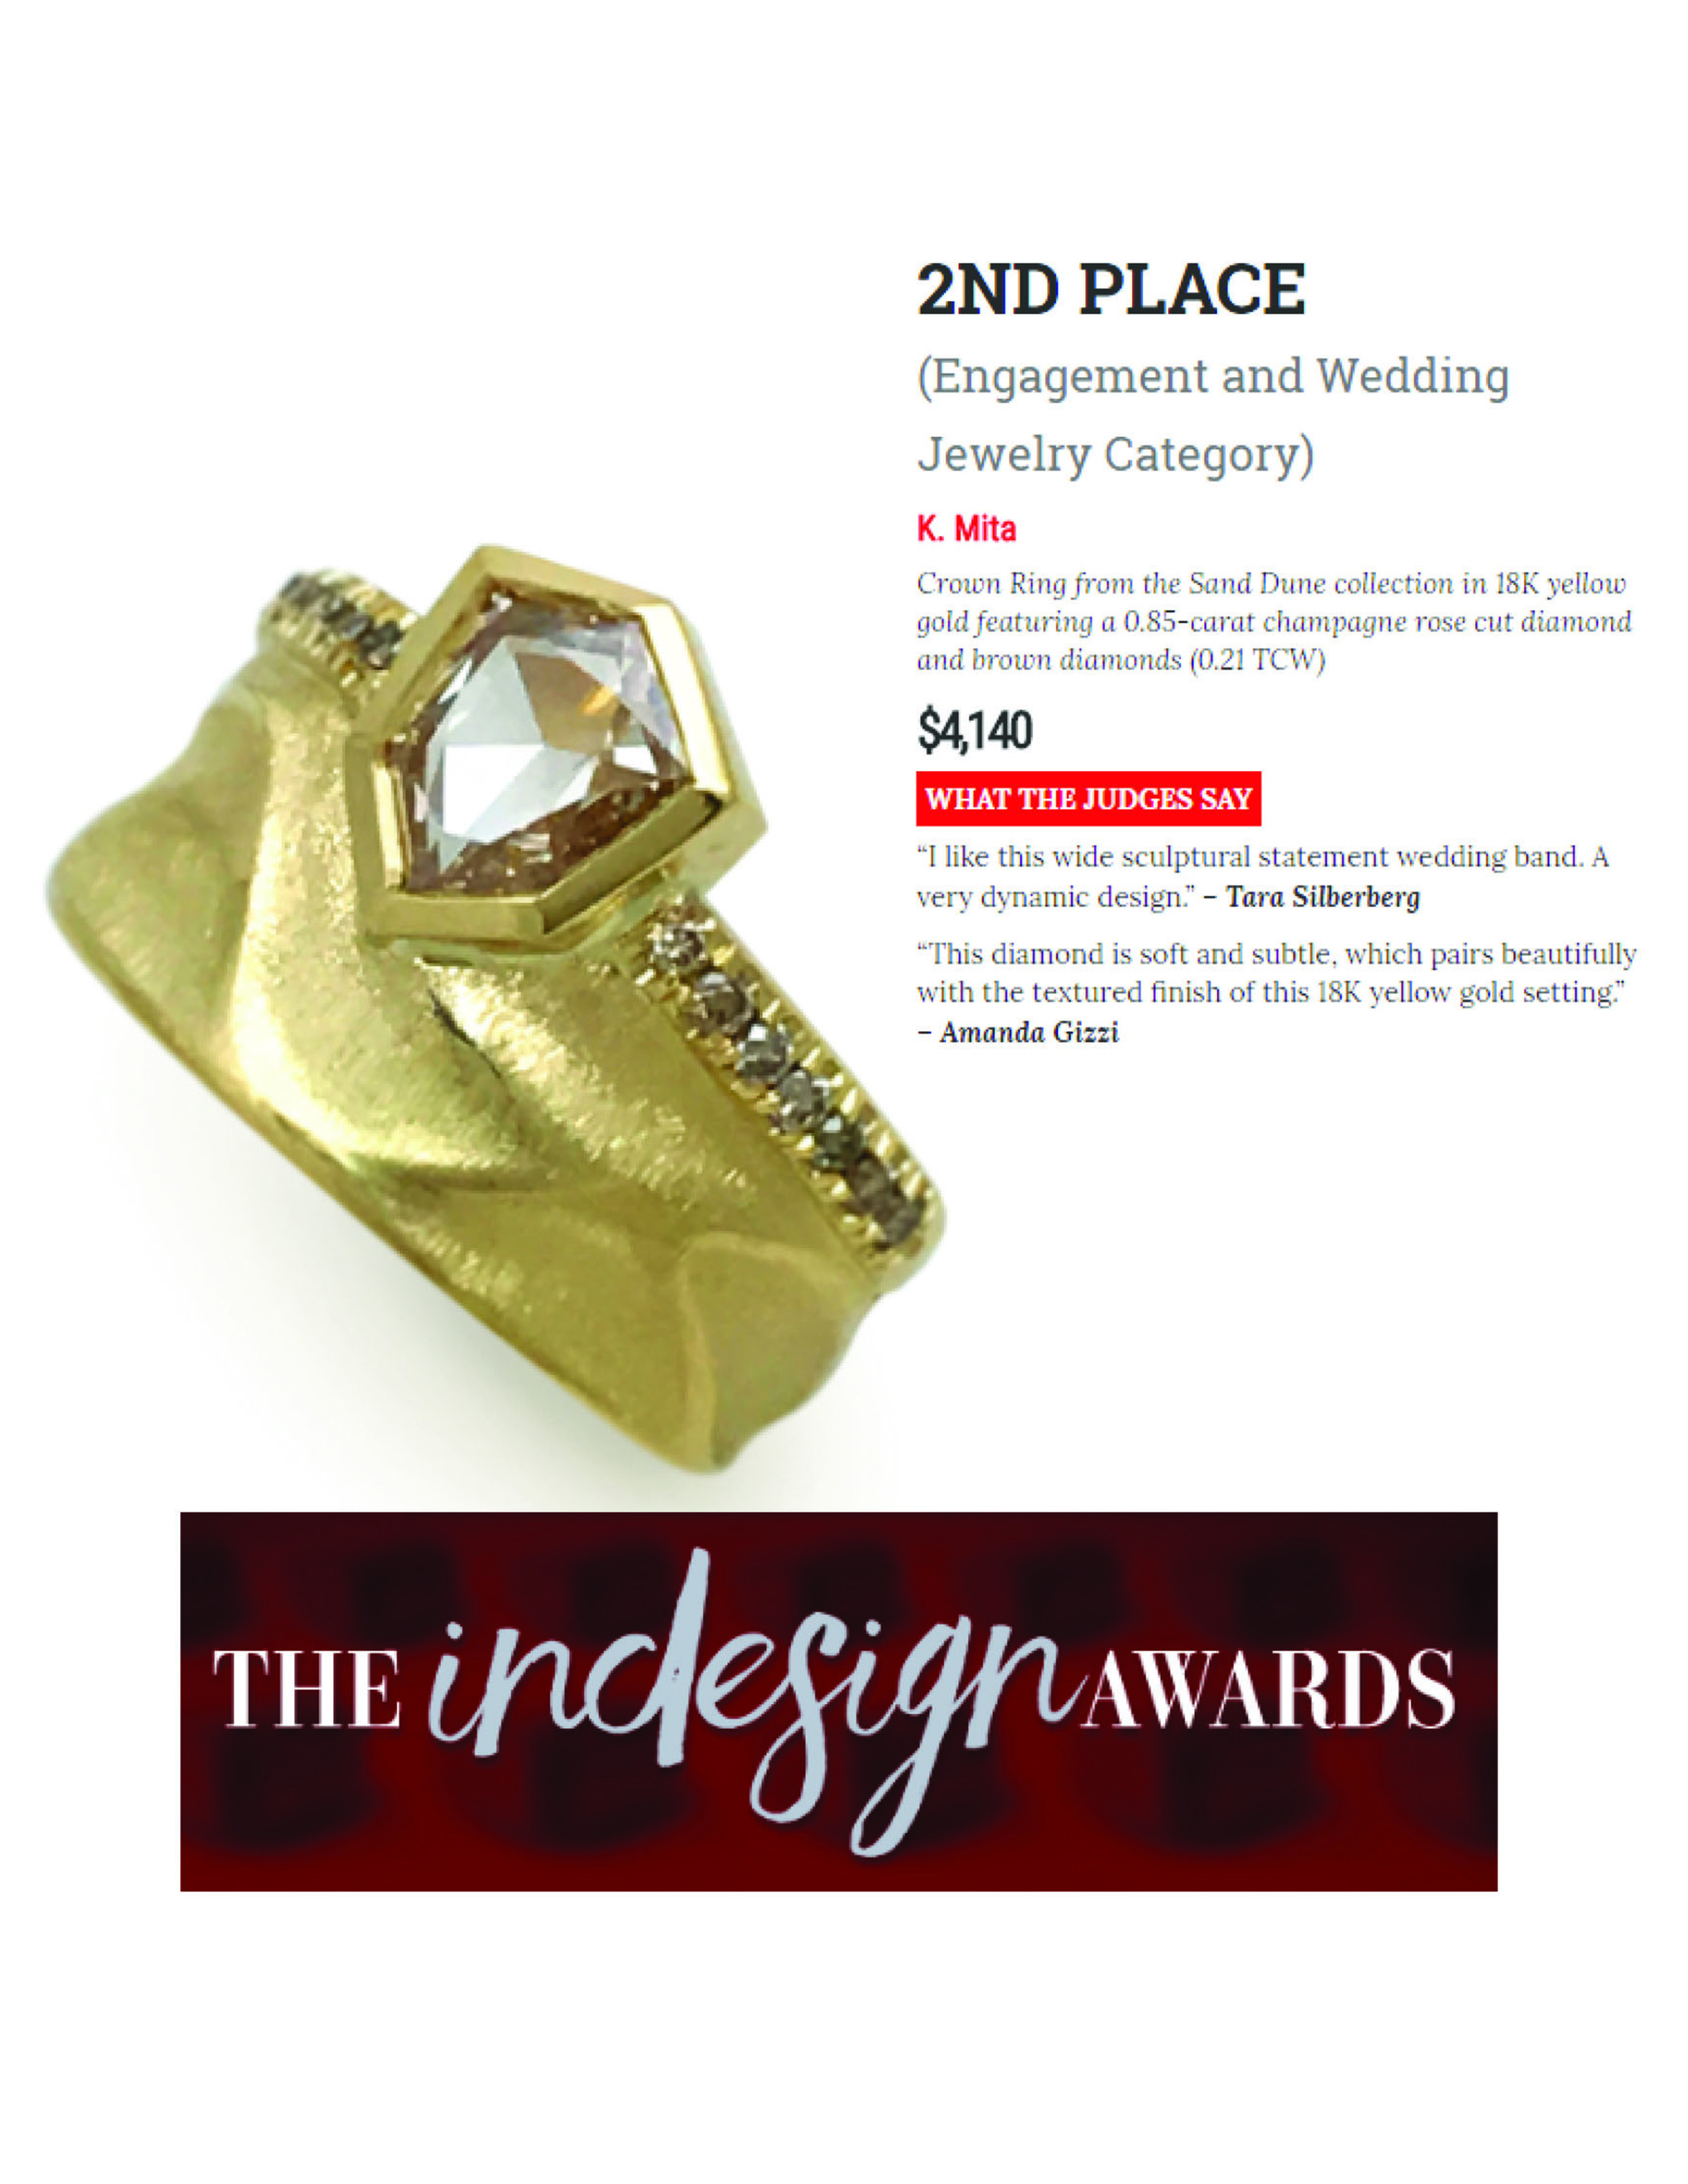 Crown Ring by K.Mita | InDesign Awards 2nd Place (Wedding) | instoremag.com May 2017